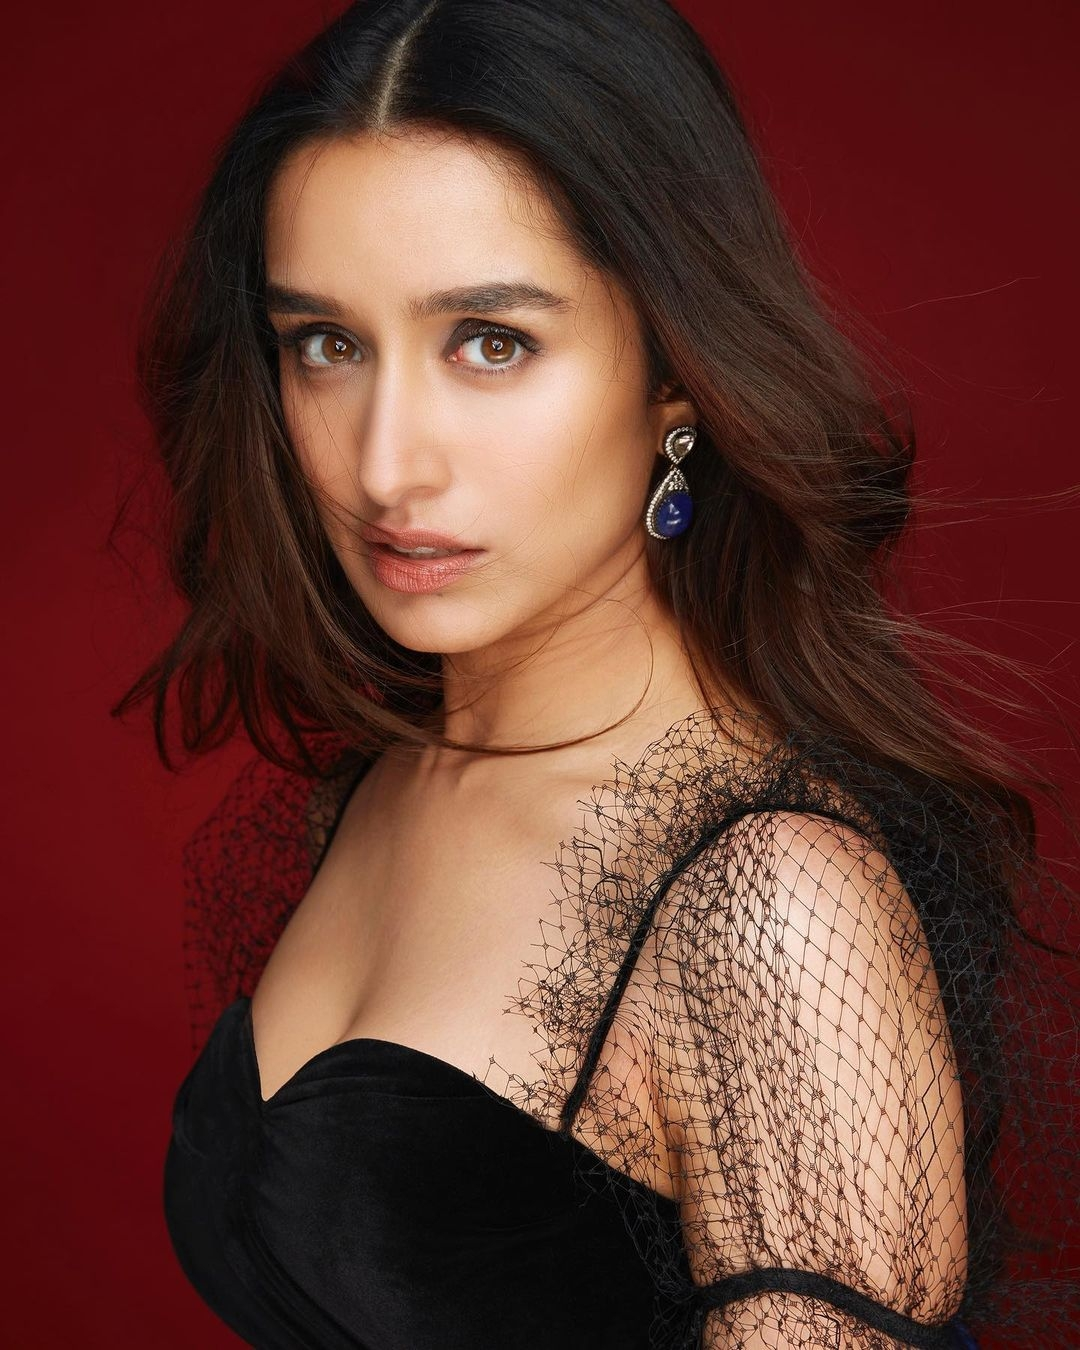 Shraddha Kapoor: During lockdown, I understood the value of 'shunya'